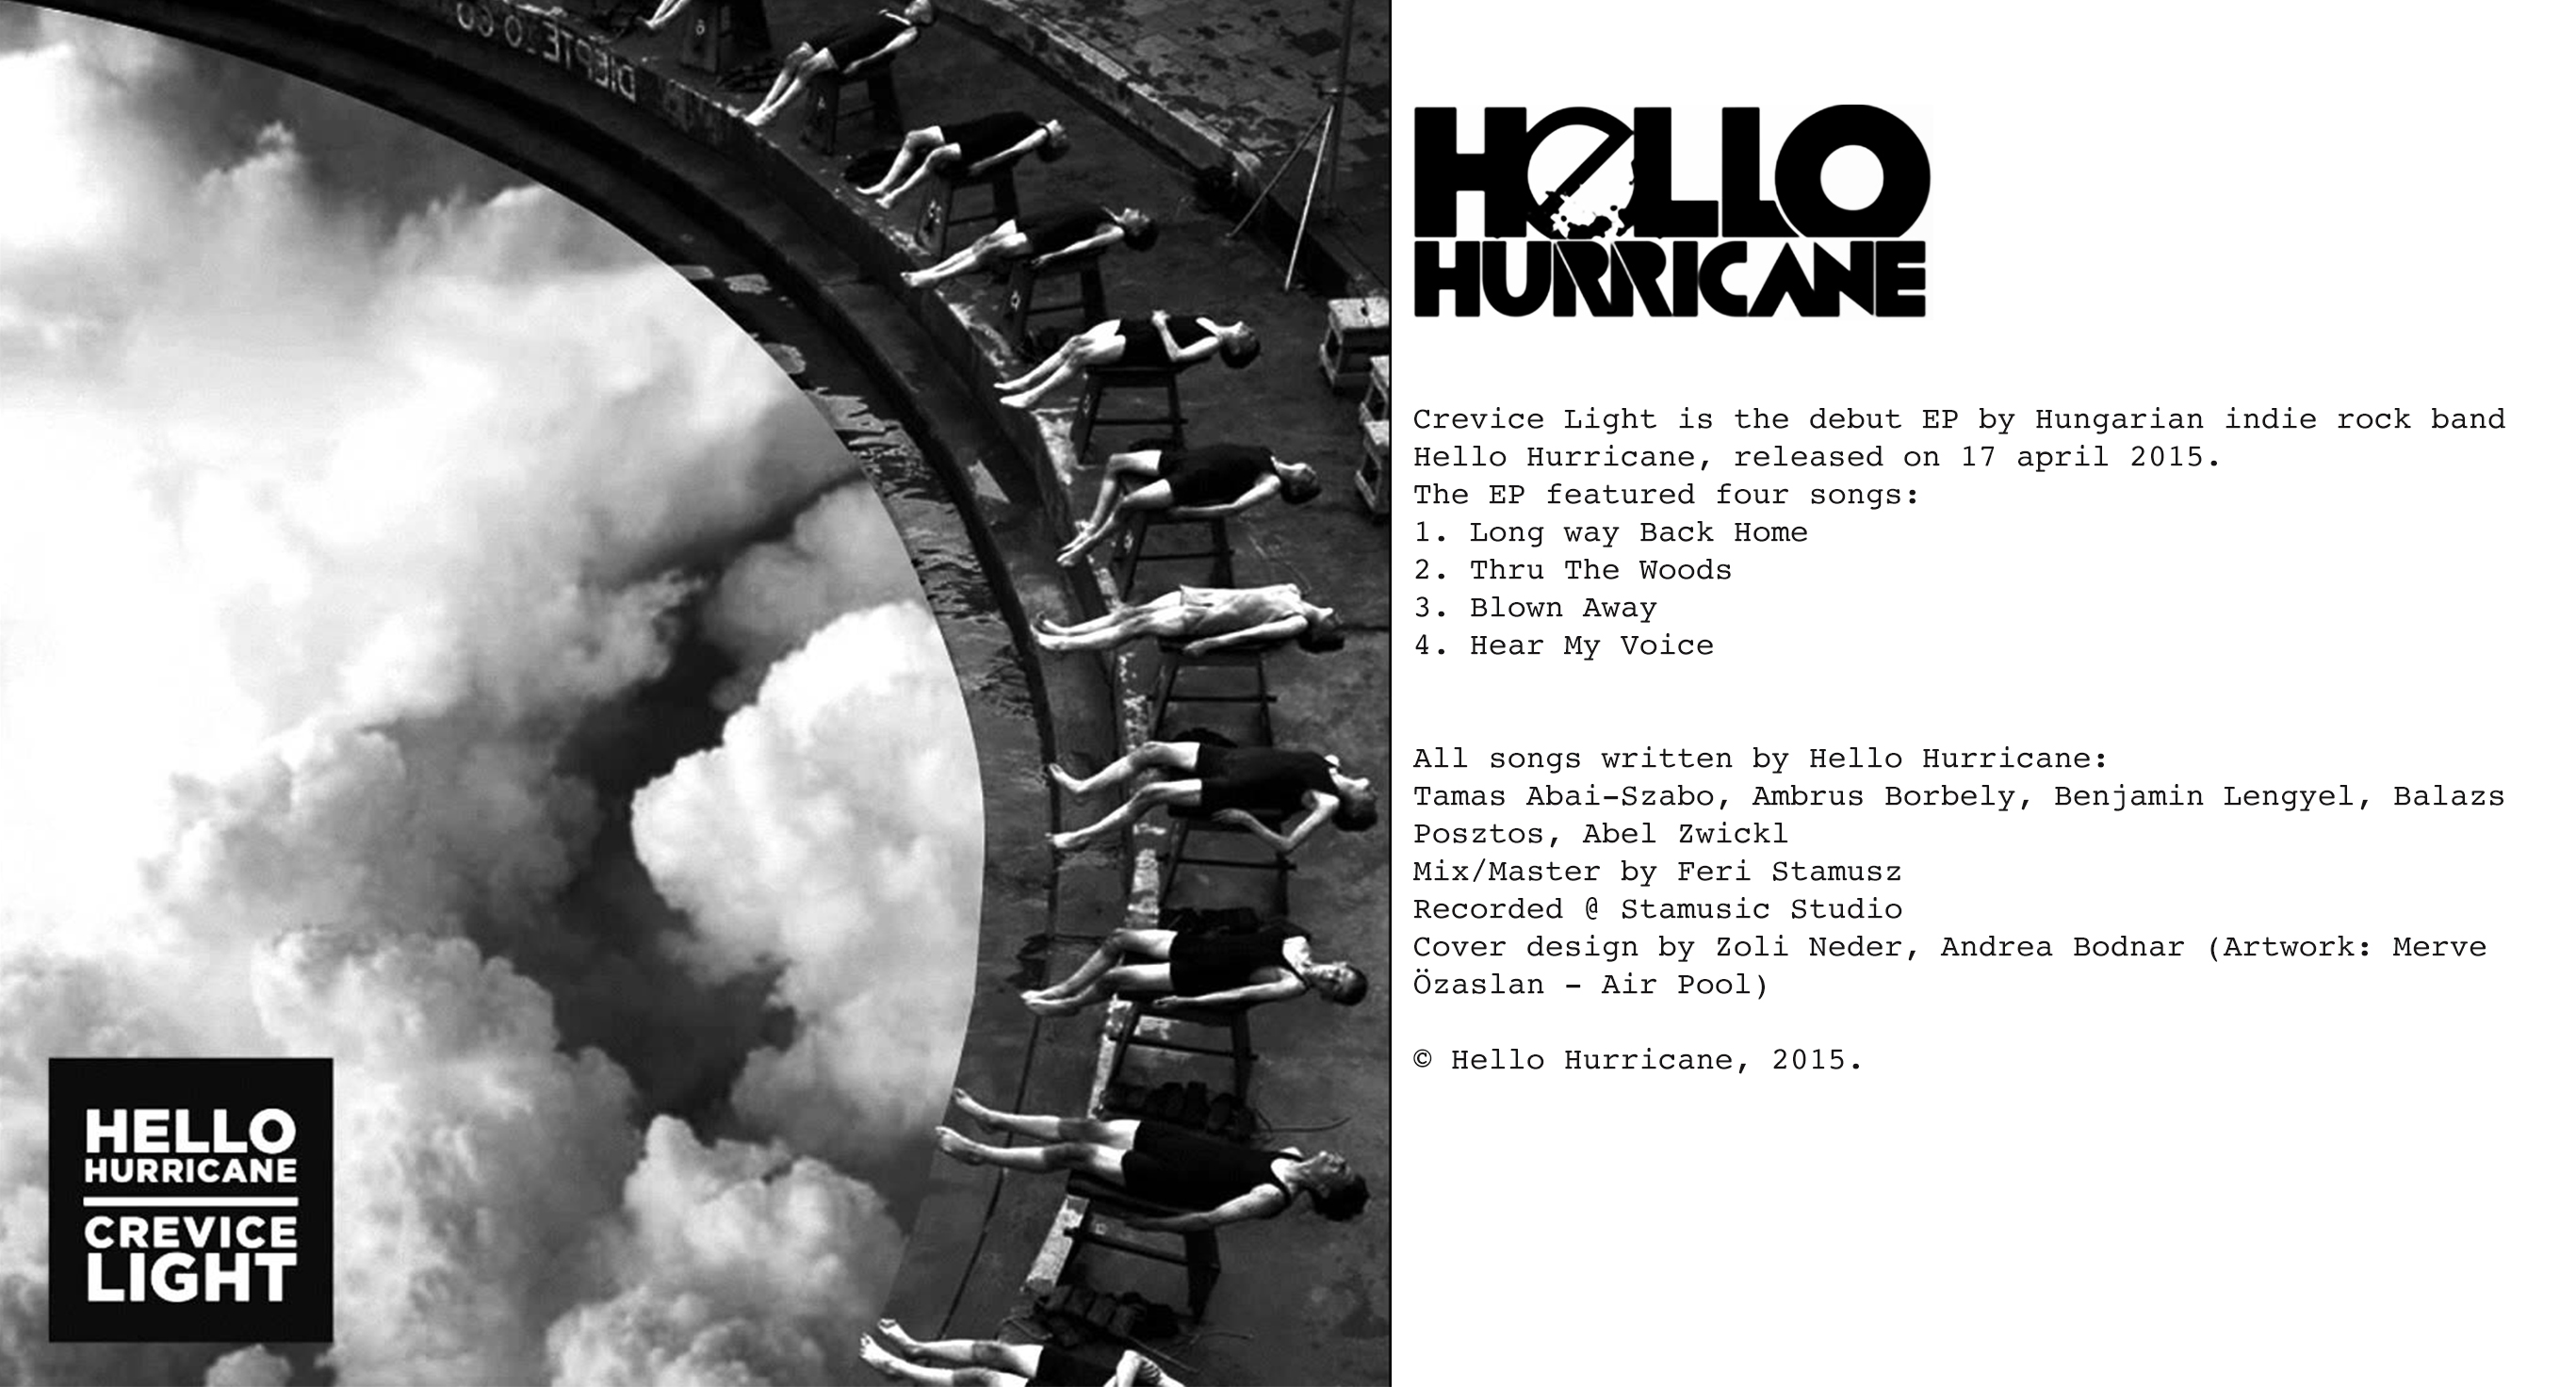 HELLO HURRICANE